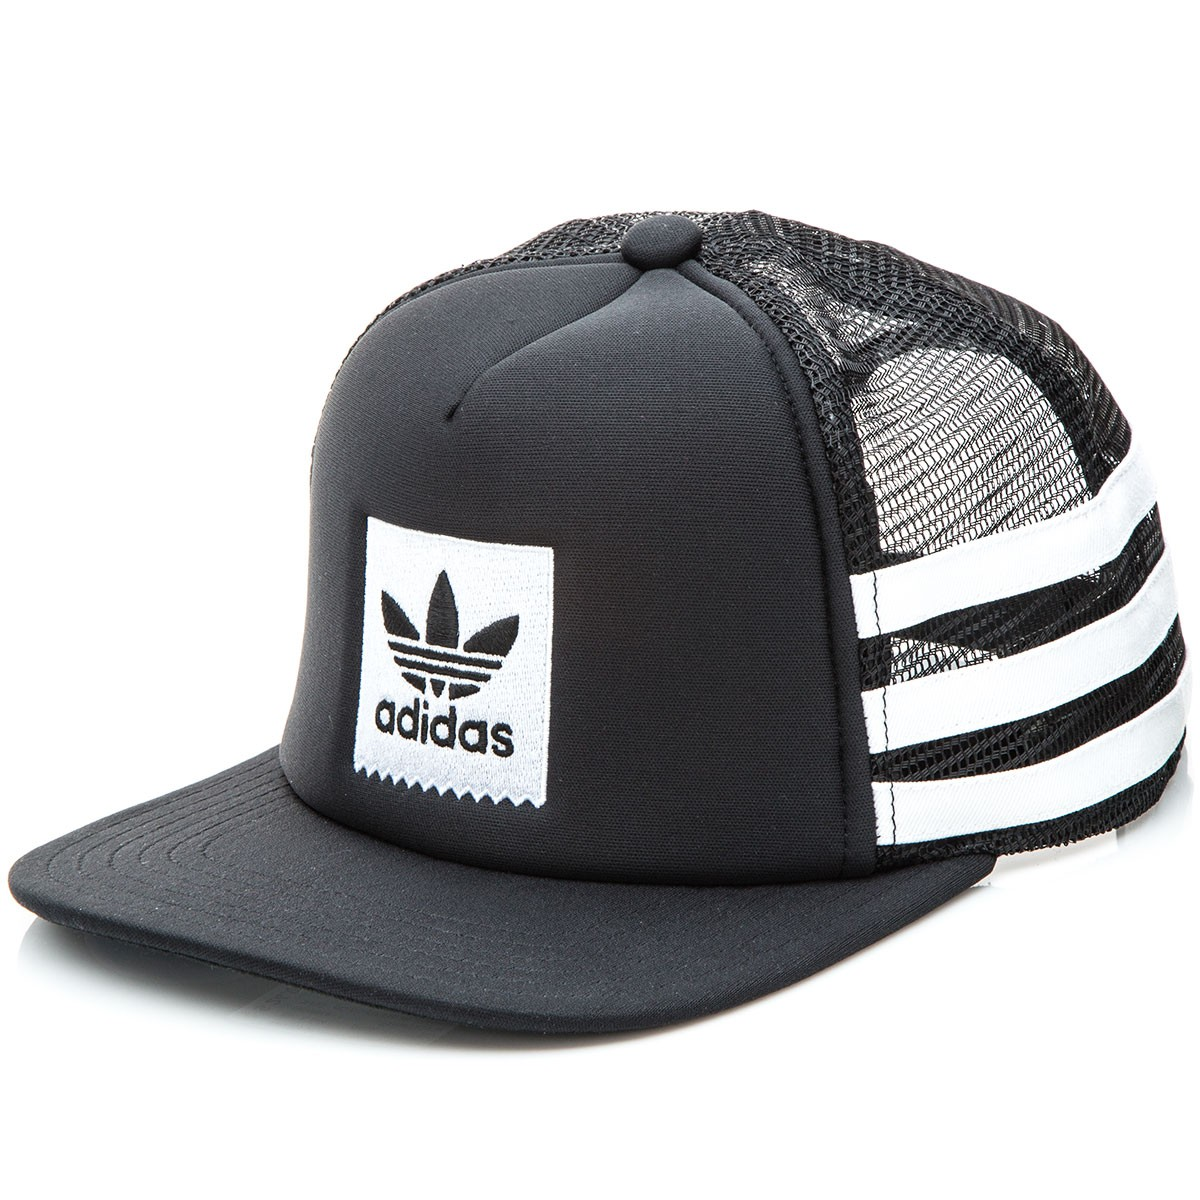 Adidas Foam Trucker Snapback Hat - Black/White